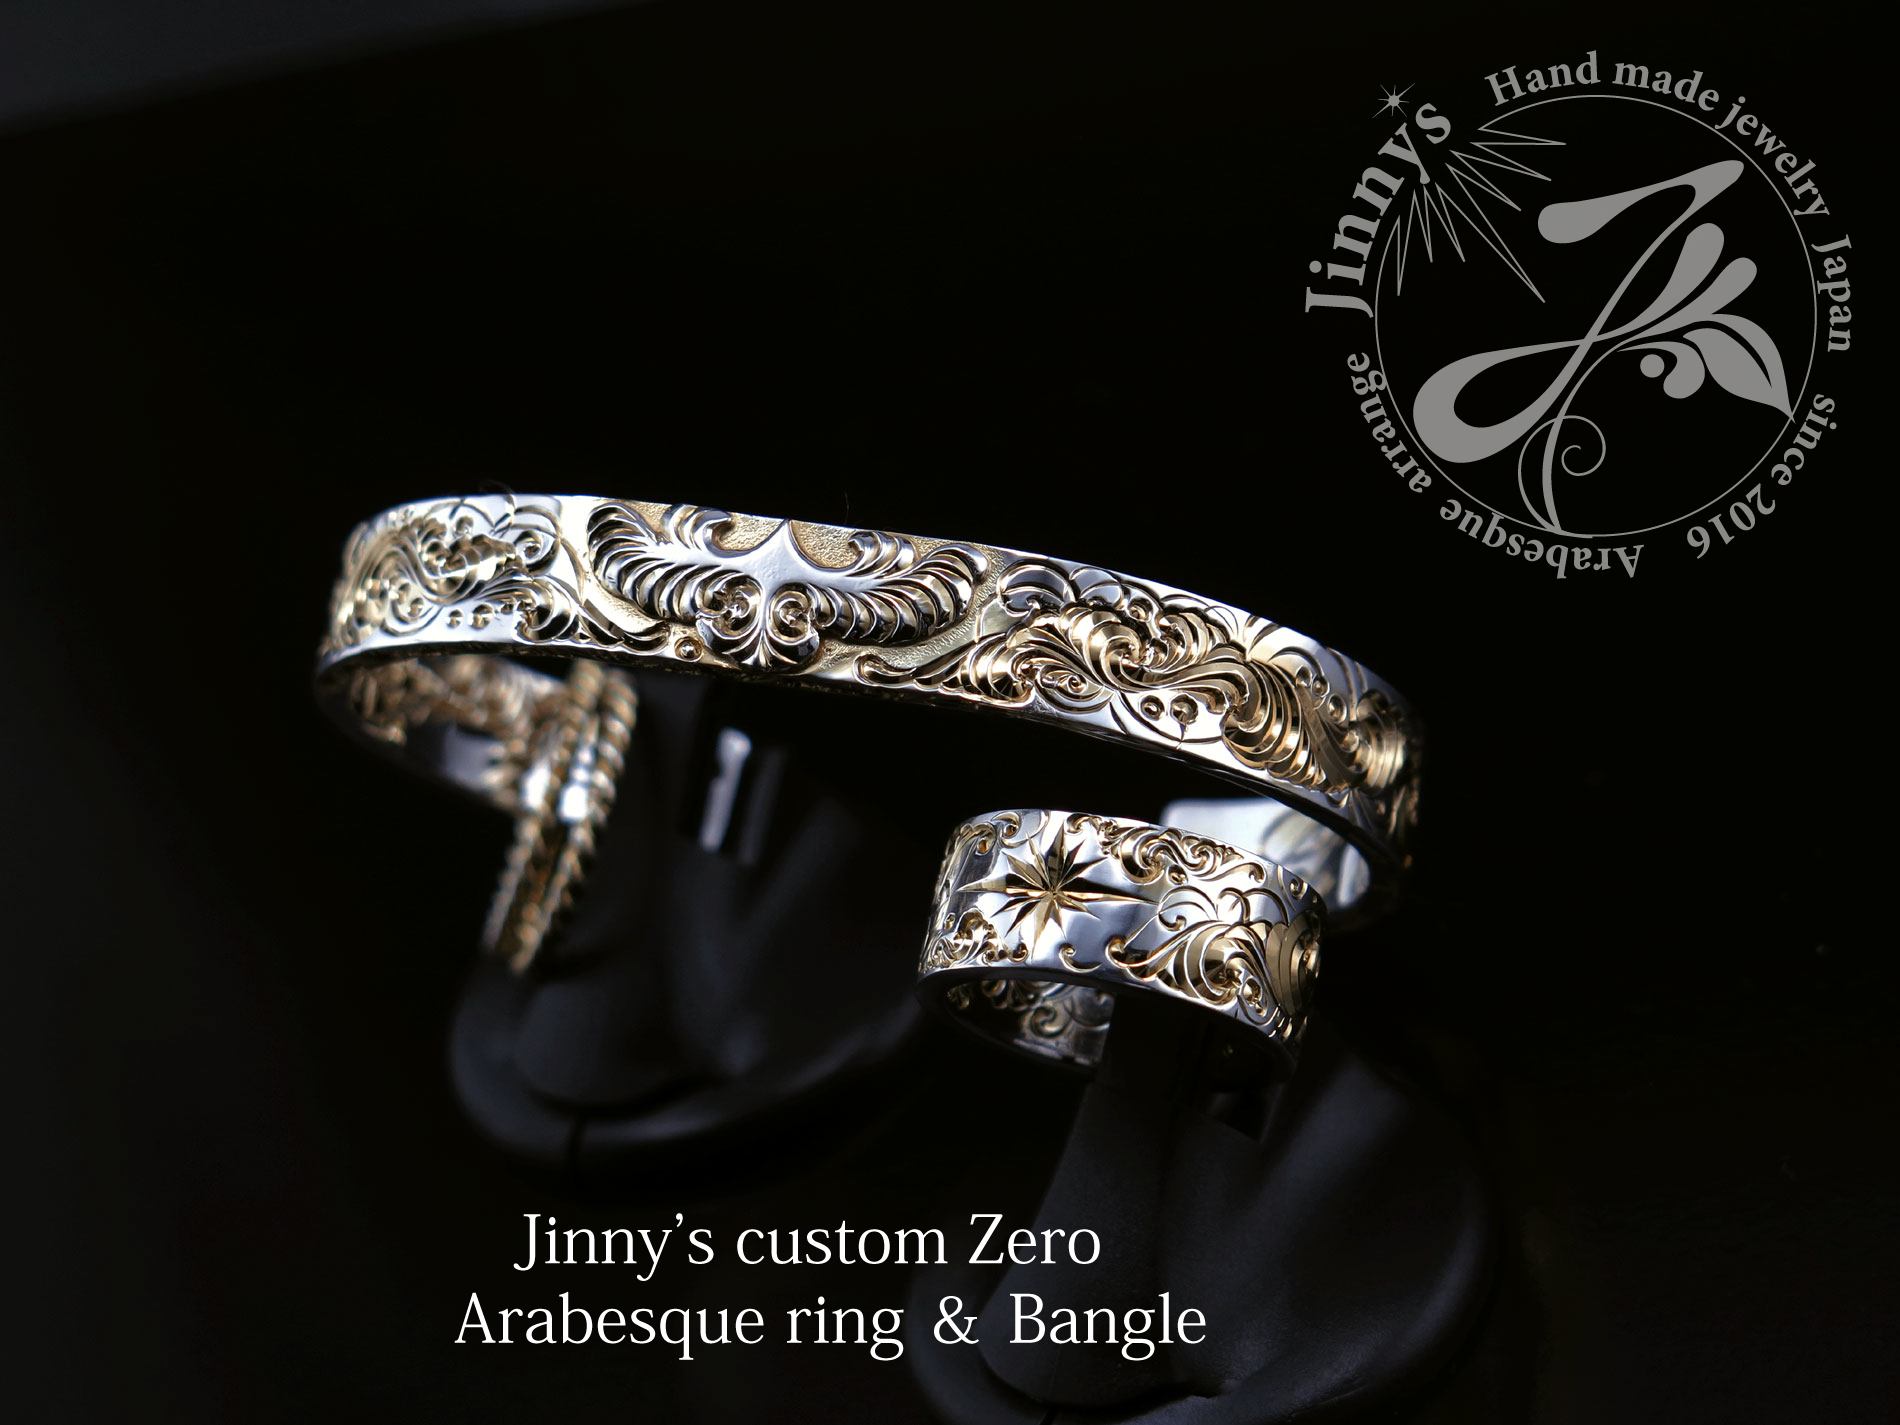 Arabesque Eagle Bangle 10 mm & Arabesque ring 10mm Czg